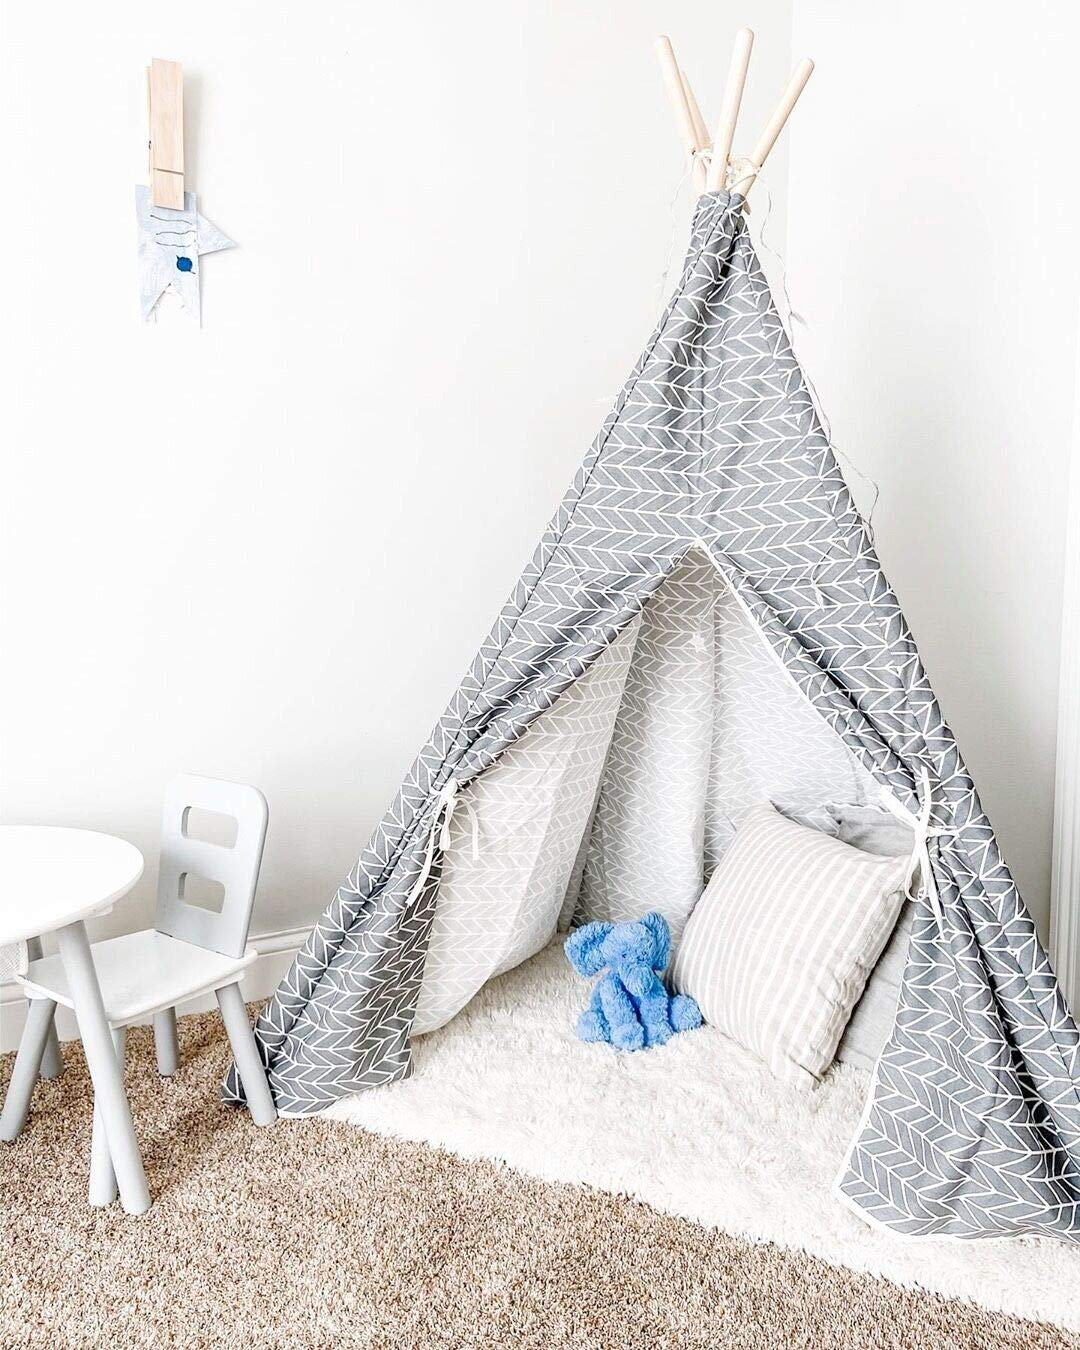 Little Dove Kid's Foldable Teepee Play Tent